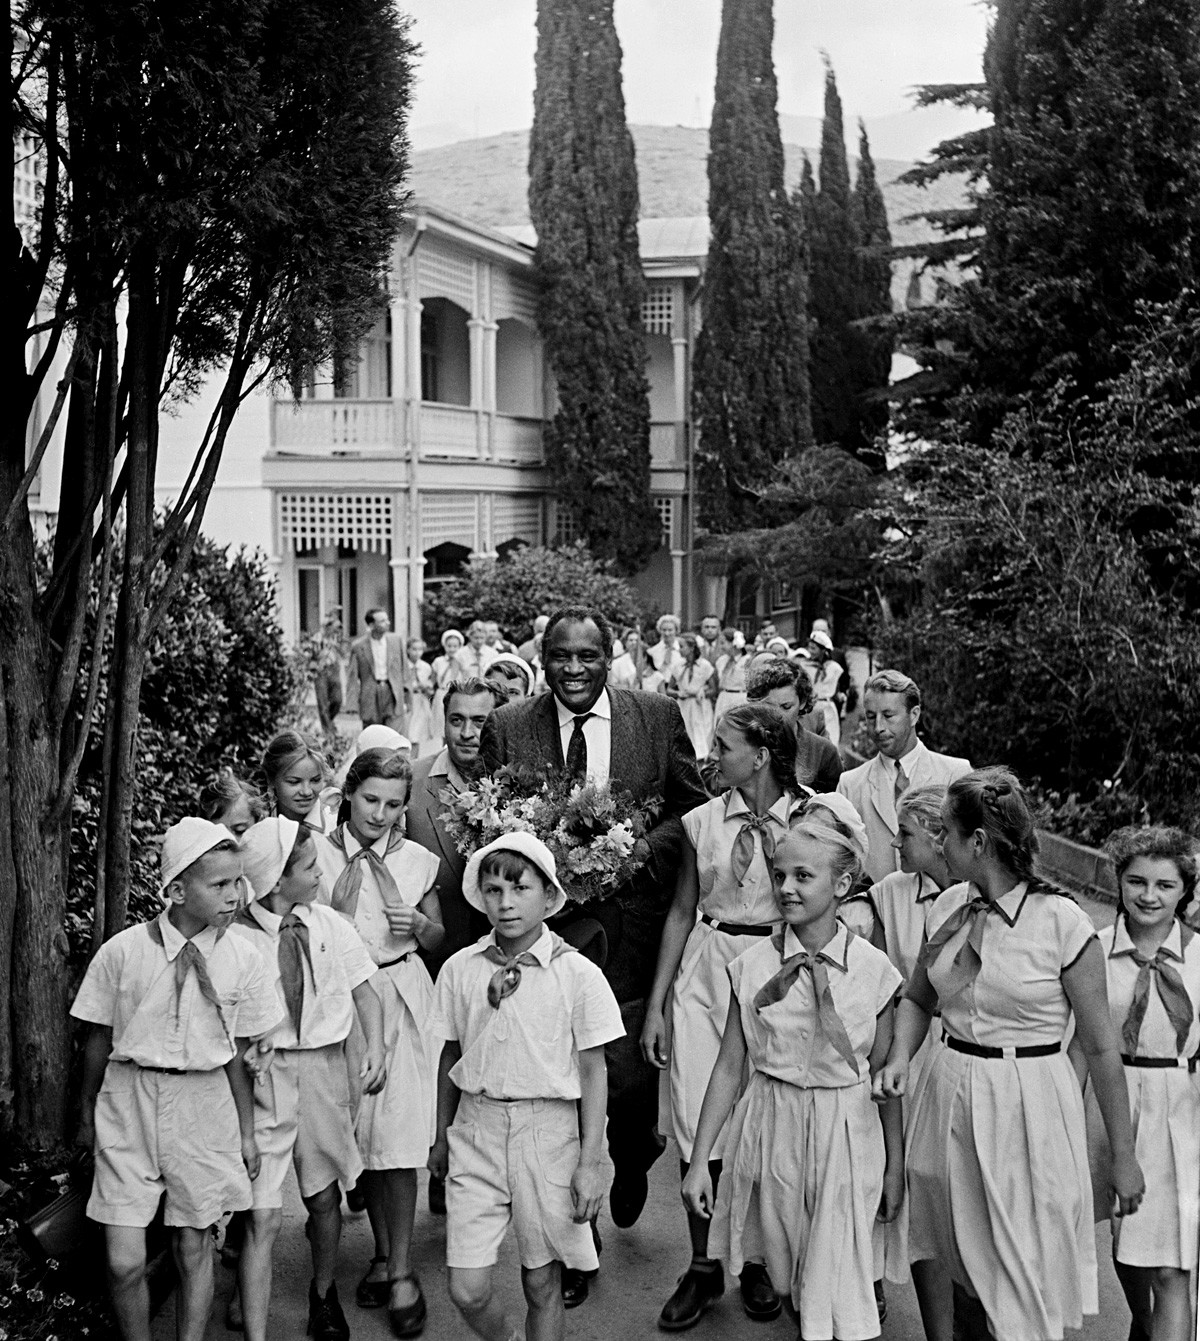 Crimea, Ukrainian SSR, USSR. American singer and prize winner of the Lenin Peace Prize Paul Robeson among pioneers at the Artek International Children's Centre.